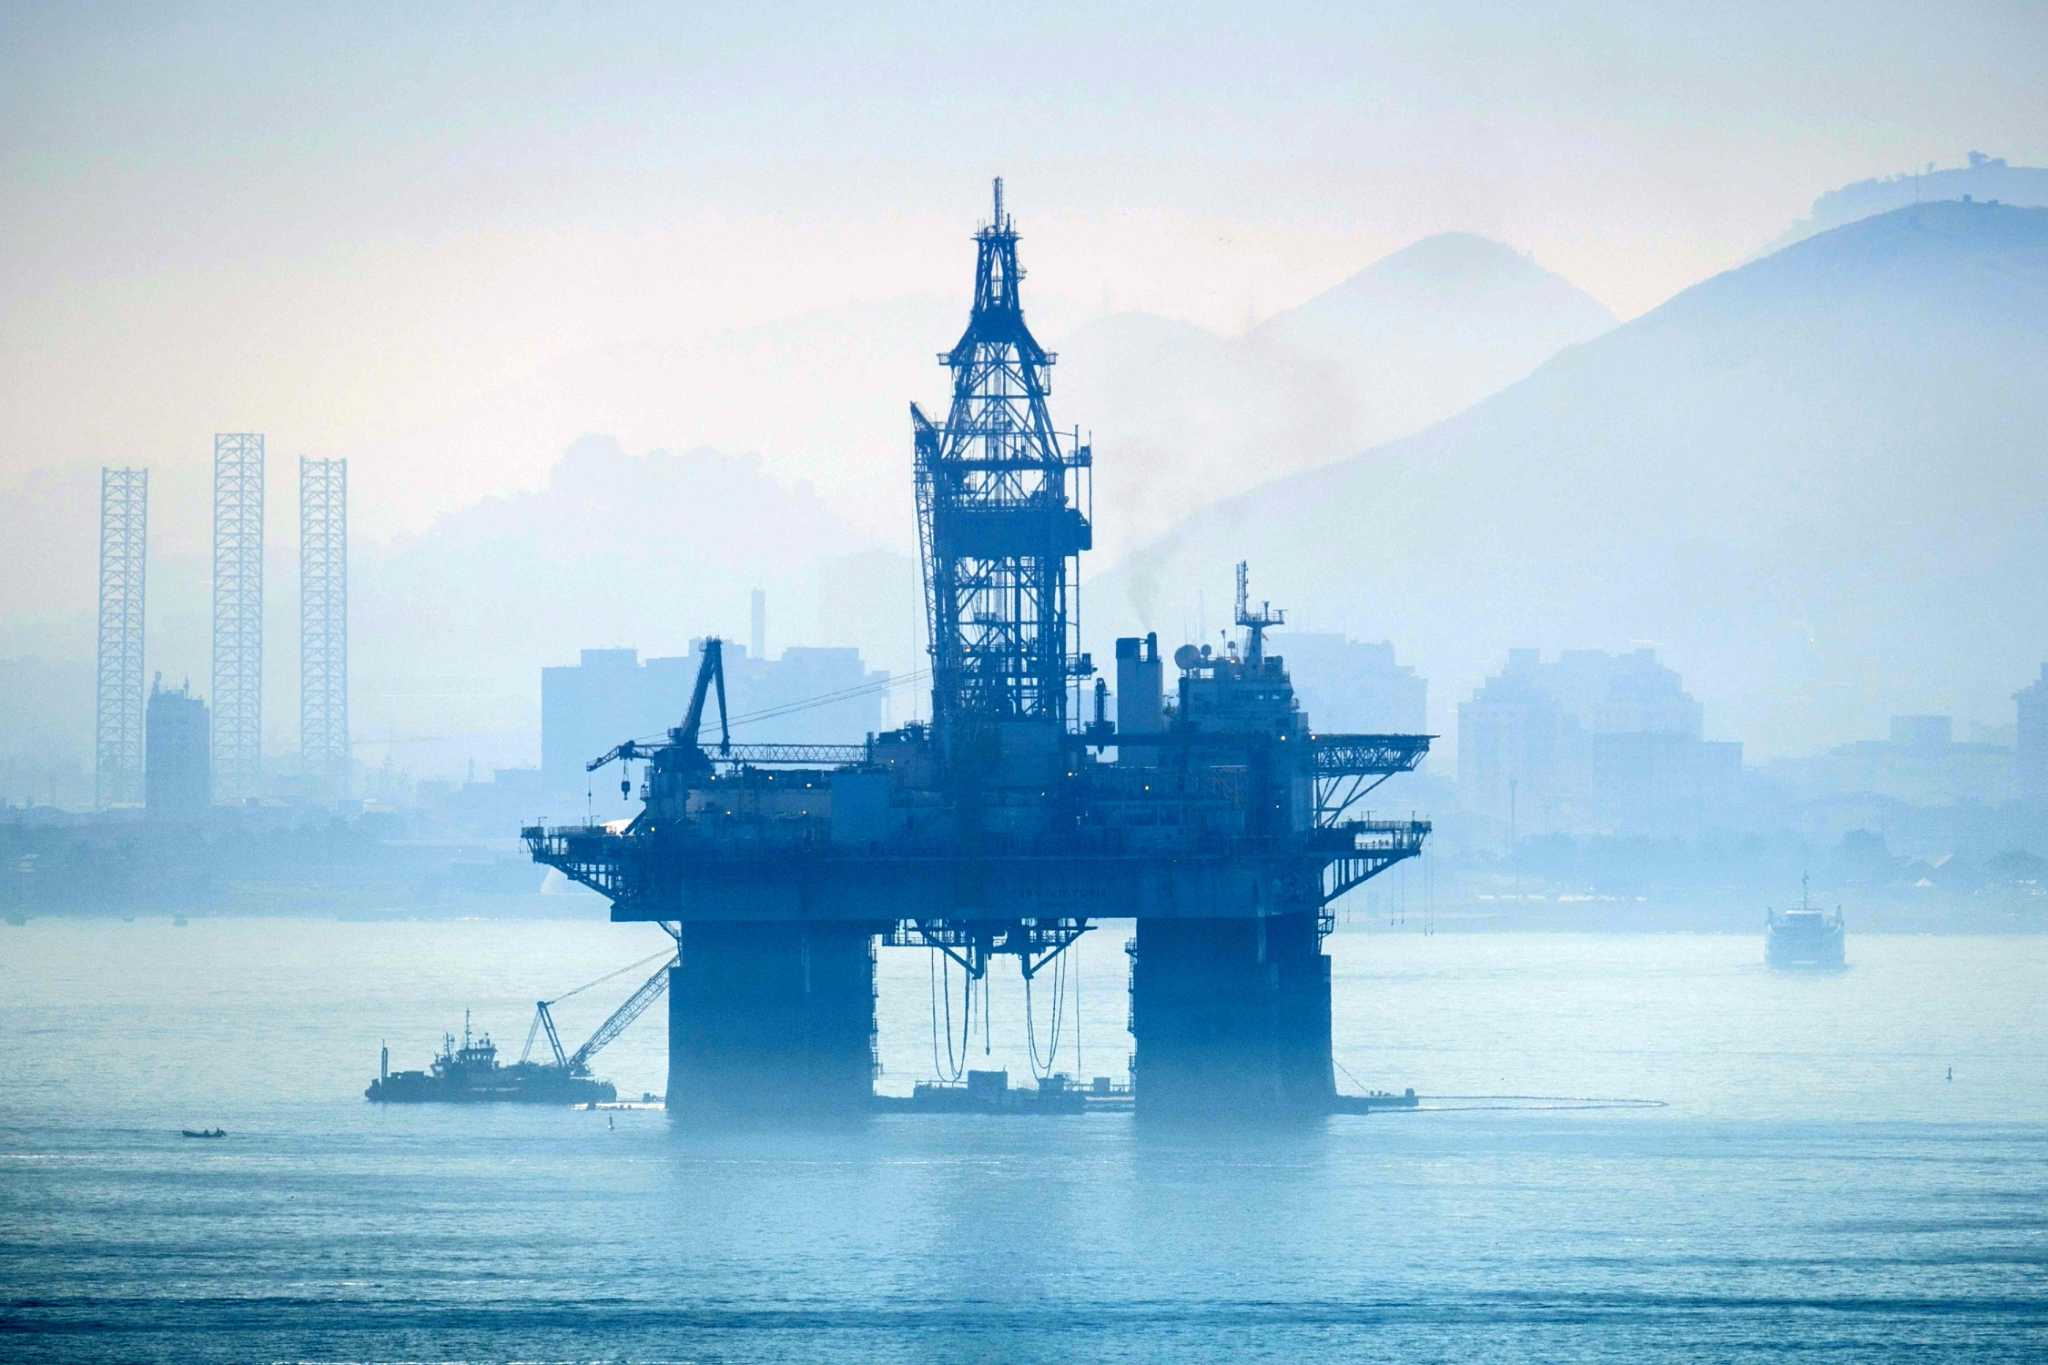 With corruption investigations widening, oil companies face